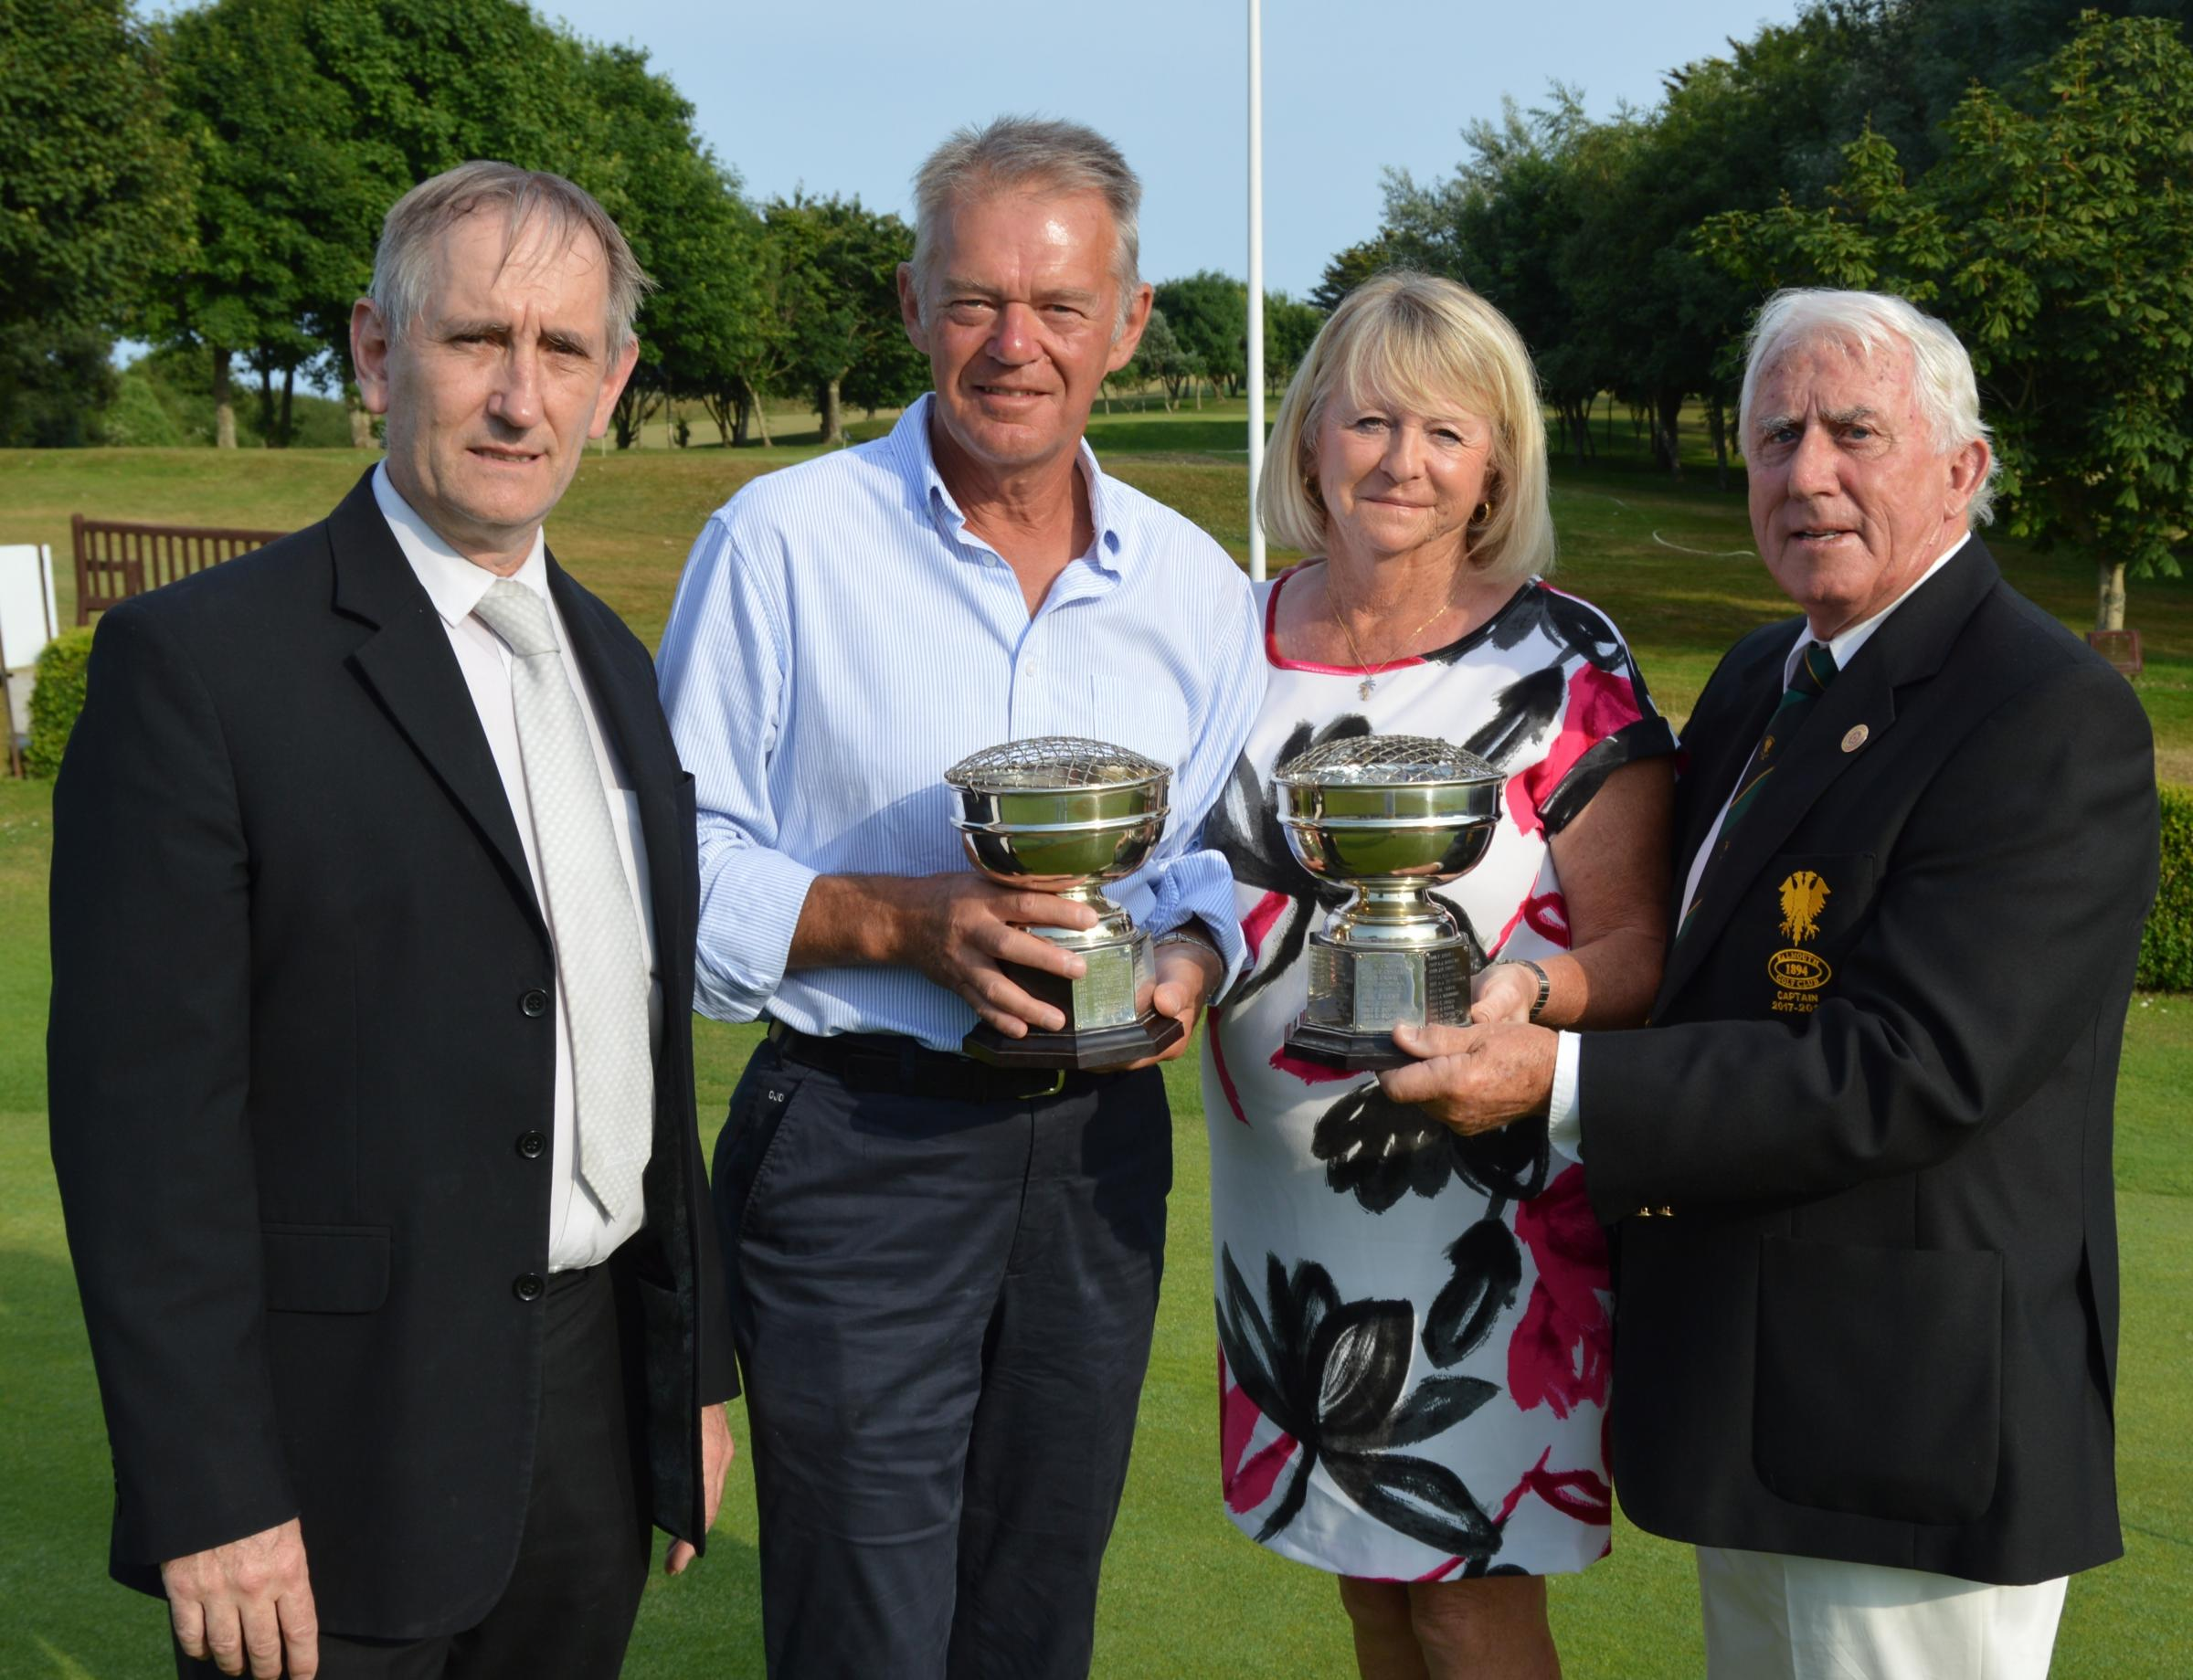 Left to right: Barry Taylor of The Royal Duchy Hotel, winners Dicky and Lynne Dickinson and William McLean Captain of Falmouth Golf Club